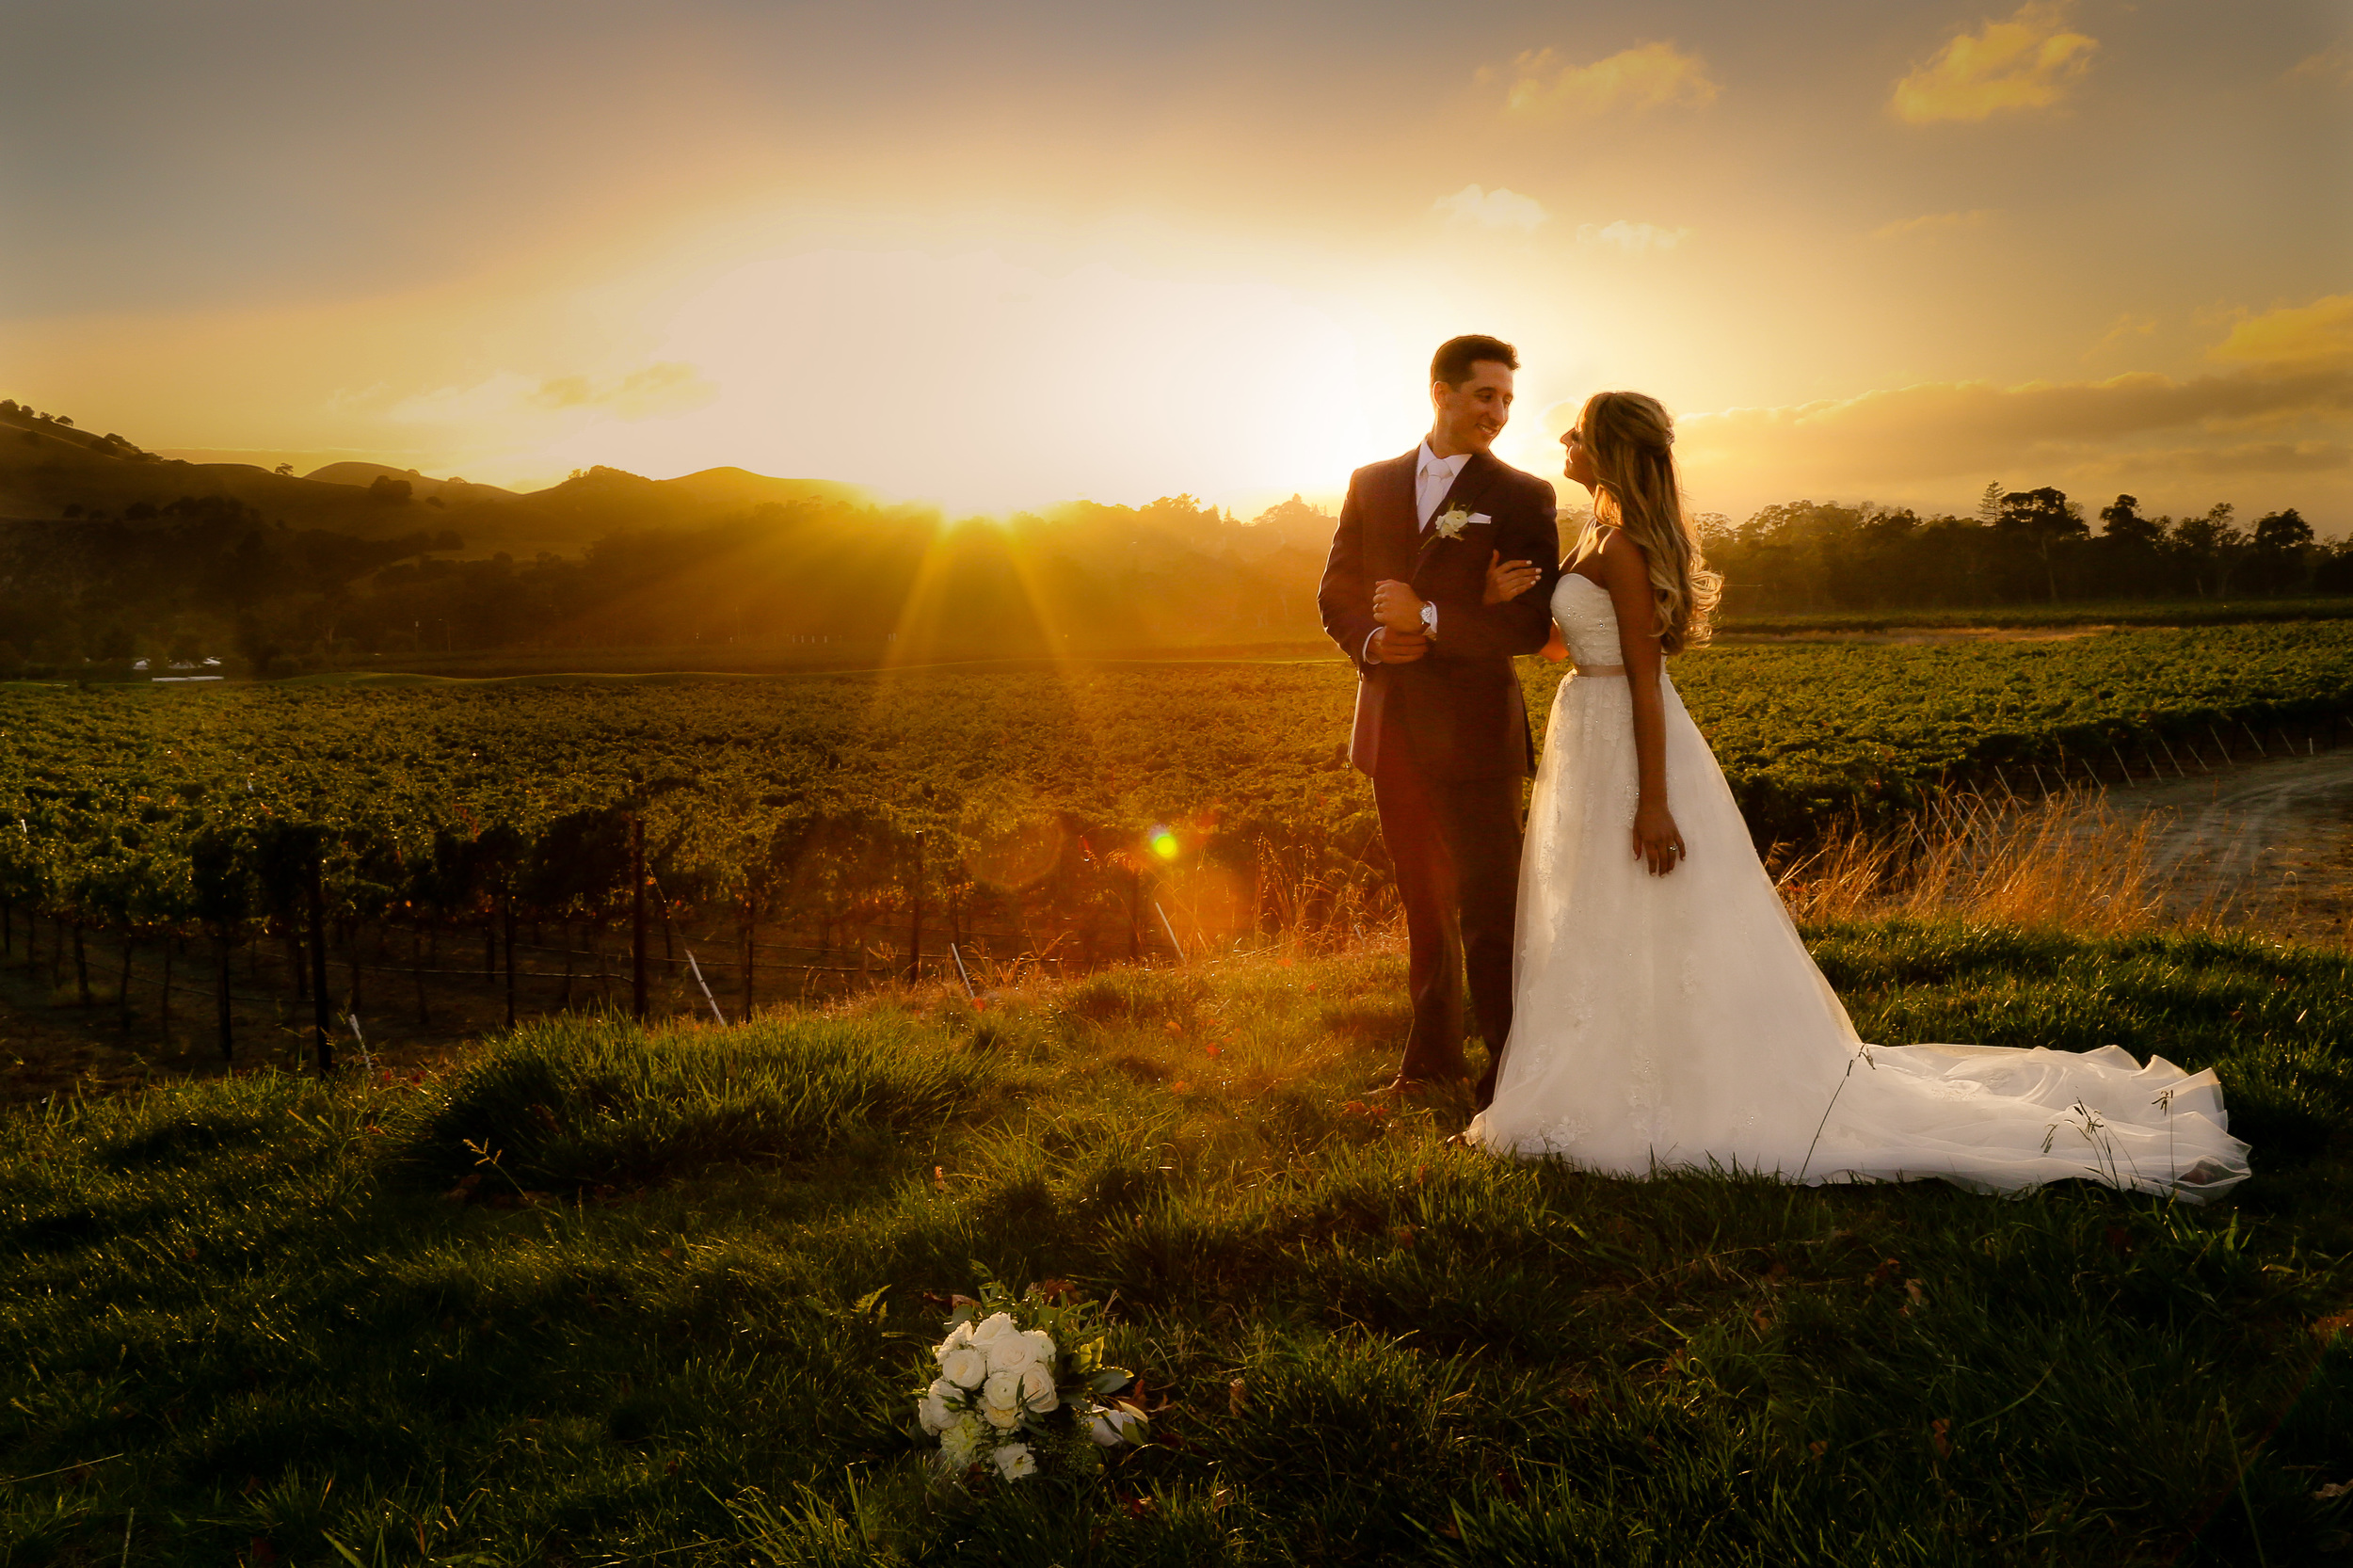 Photography by Discovery Bay Studios